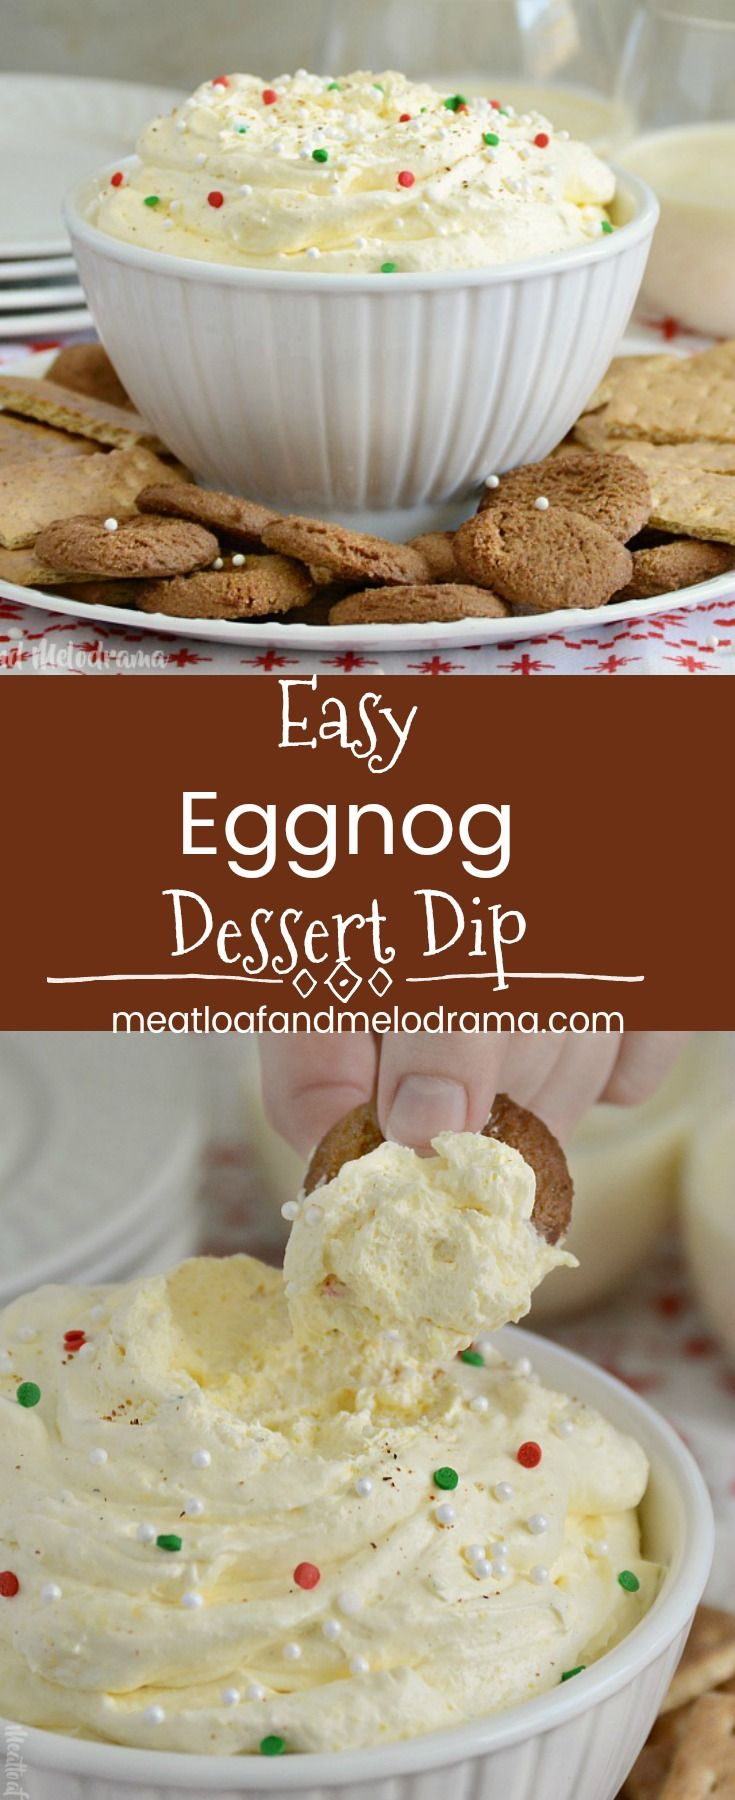 Tasty Quick Easy Desserts Recipes On Pinterest